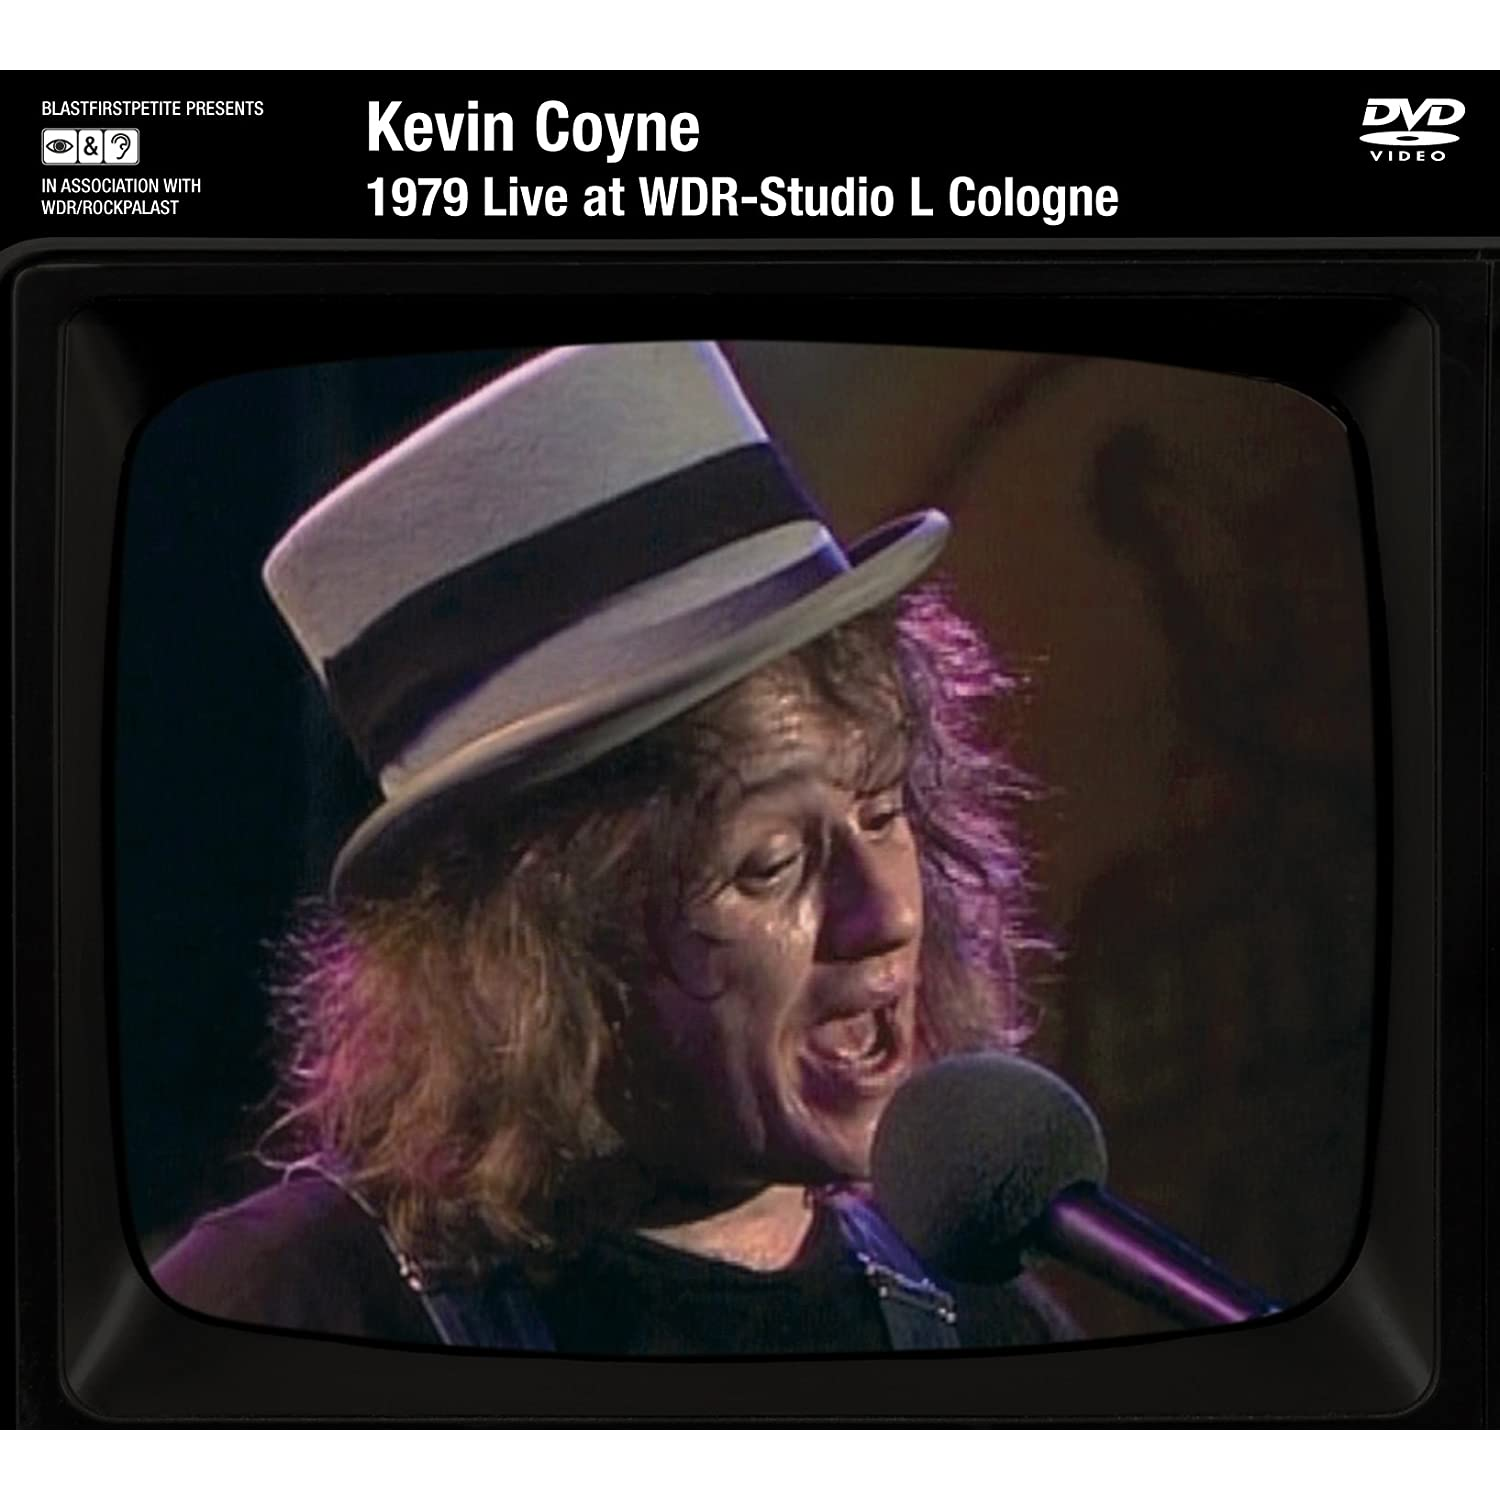 Kevin Coyne - Page 2 71Ie%2BzHSyzL._AA1500_